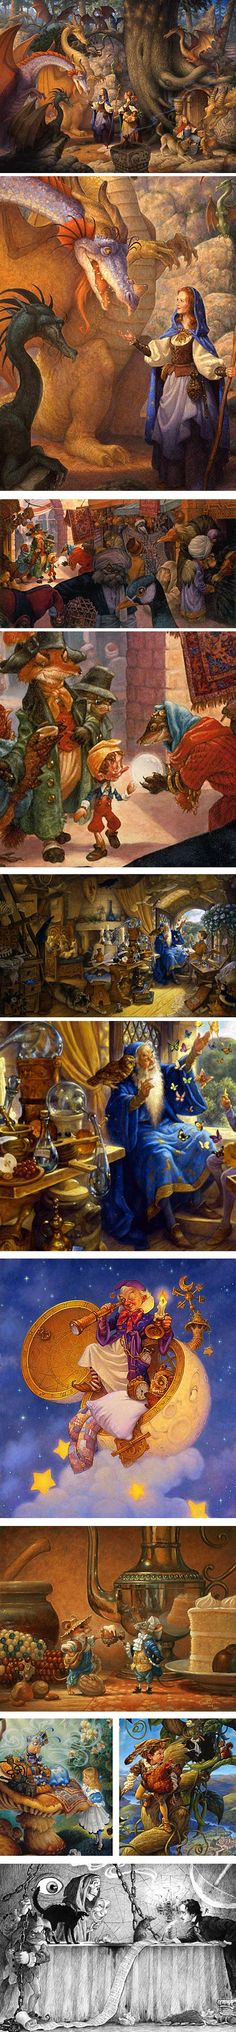 Scott Gustafson, illustrator.  One of the best... I love his illustrations, books... the details.. they make old stories new!